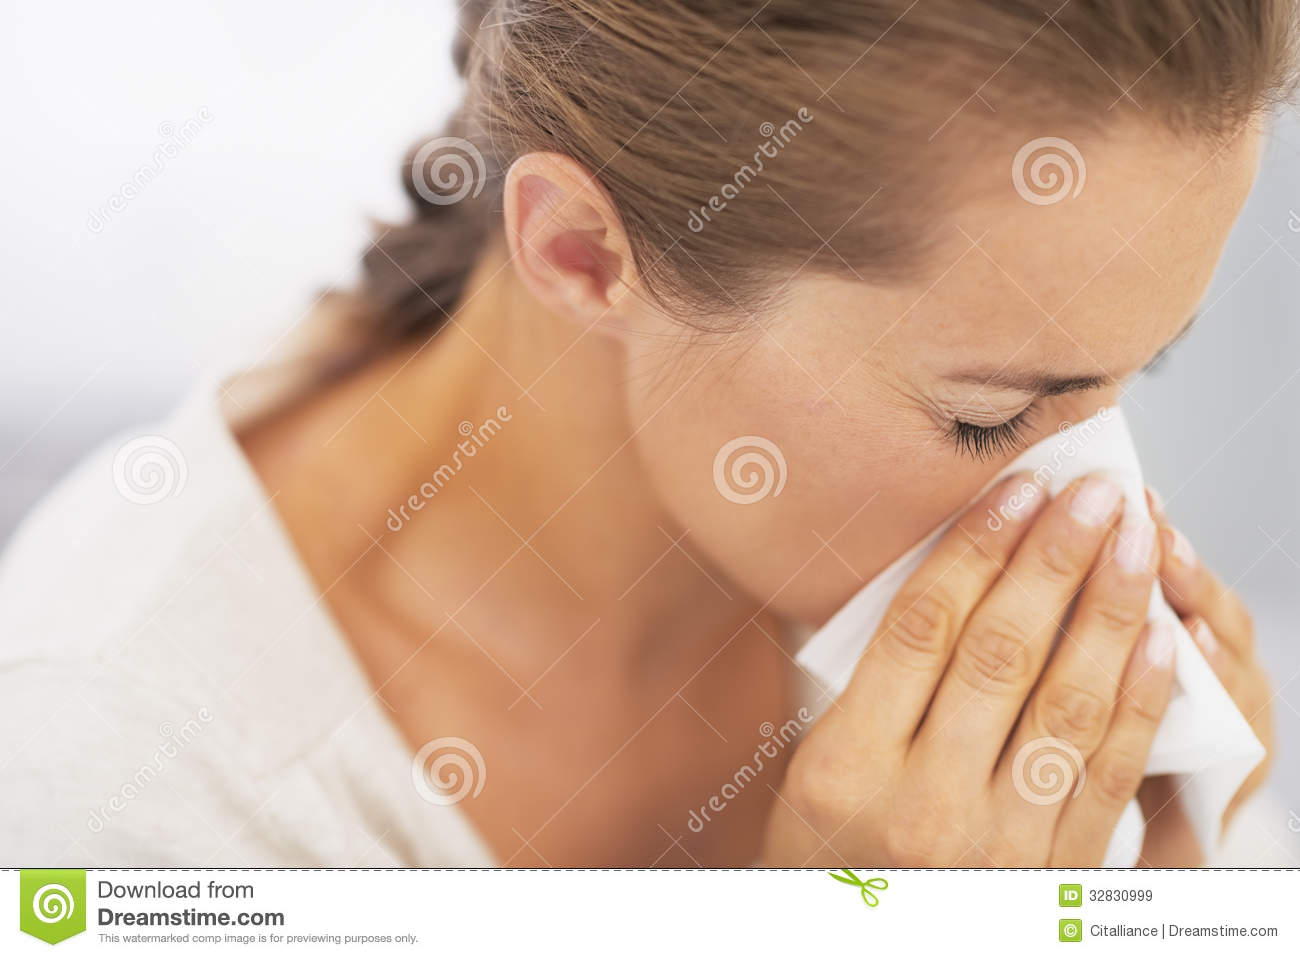 Woman Blowing Nose Into Handkerchief Stock Image  Image 32830999